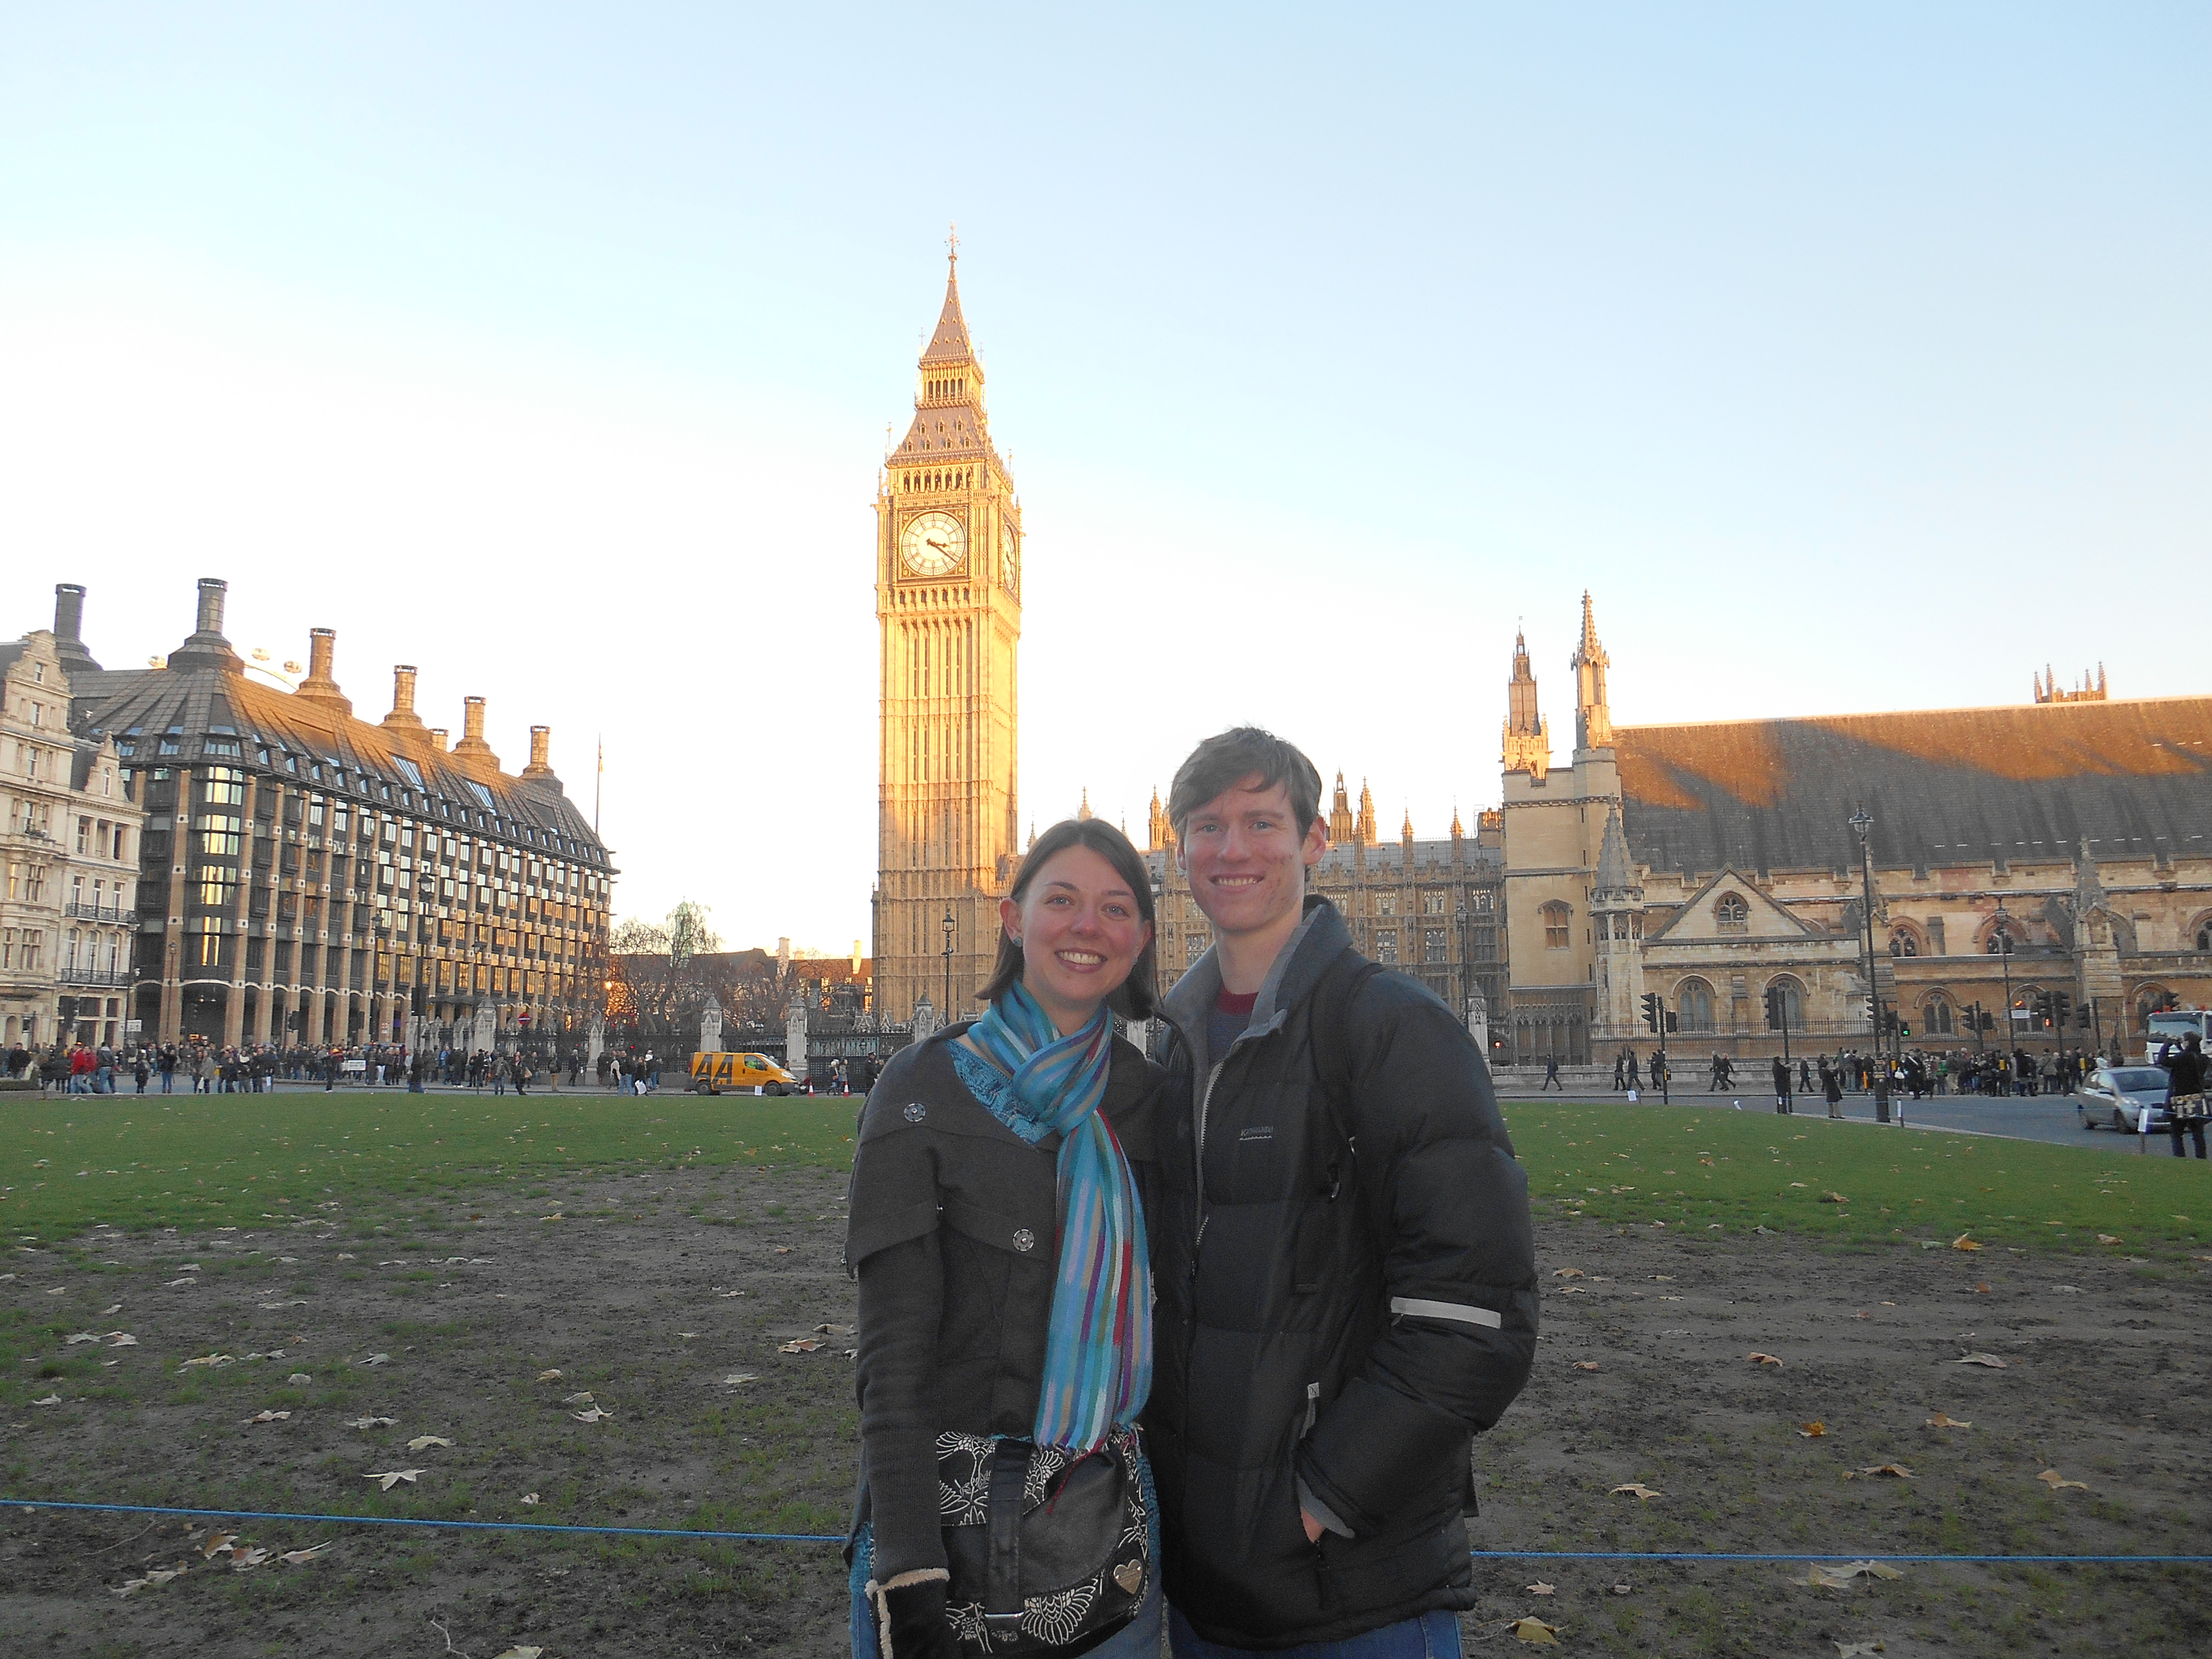 My one touristy photo or the day! Me, Peter and the afternoon sun on Big Ben.